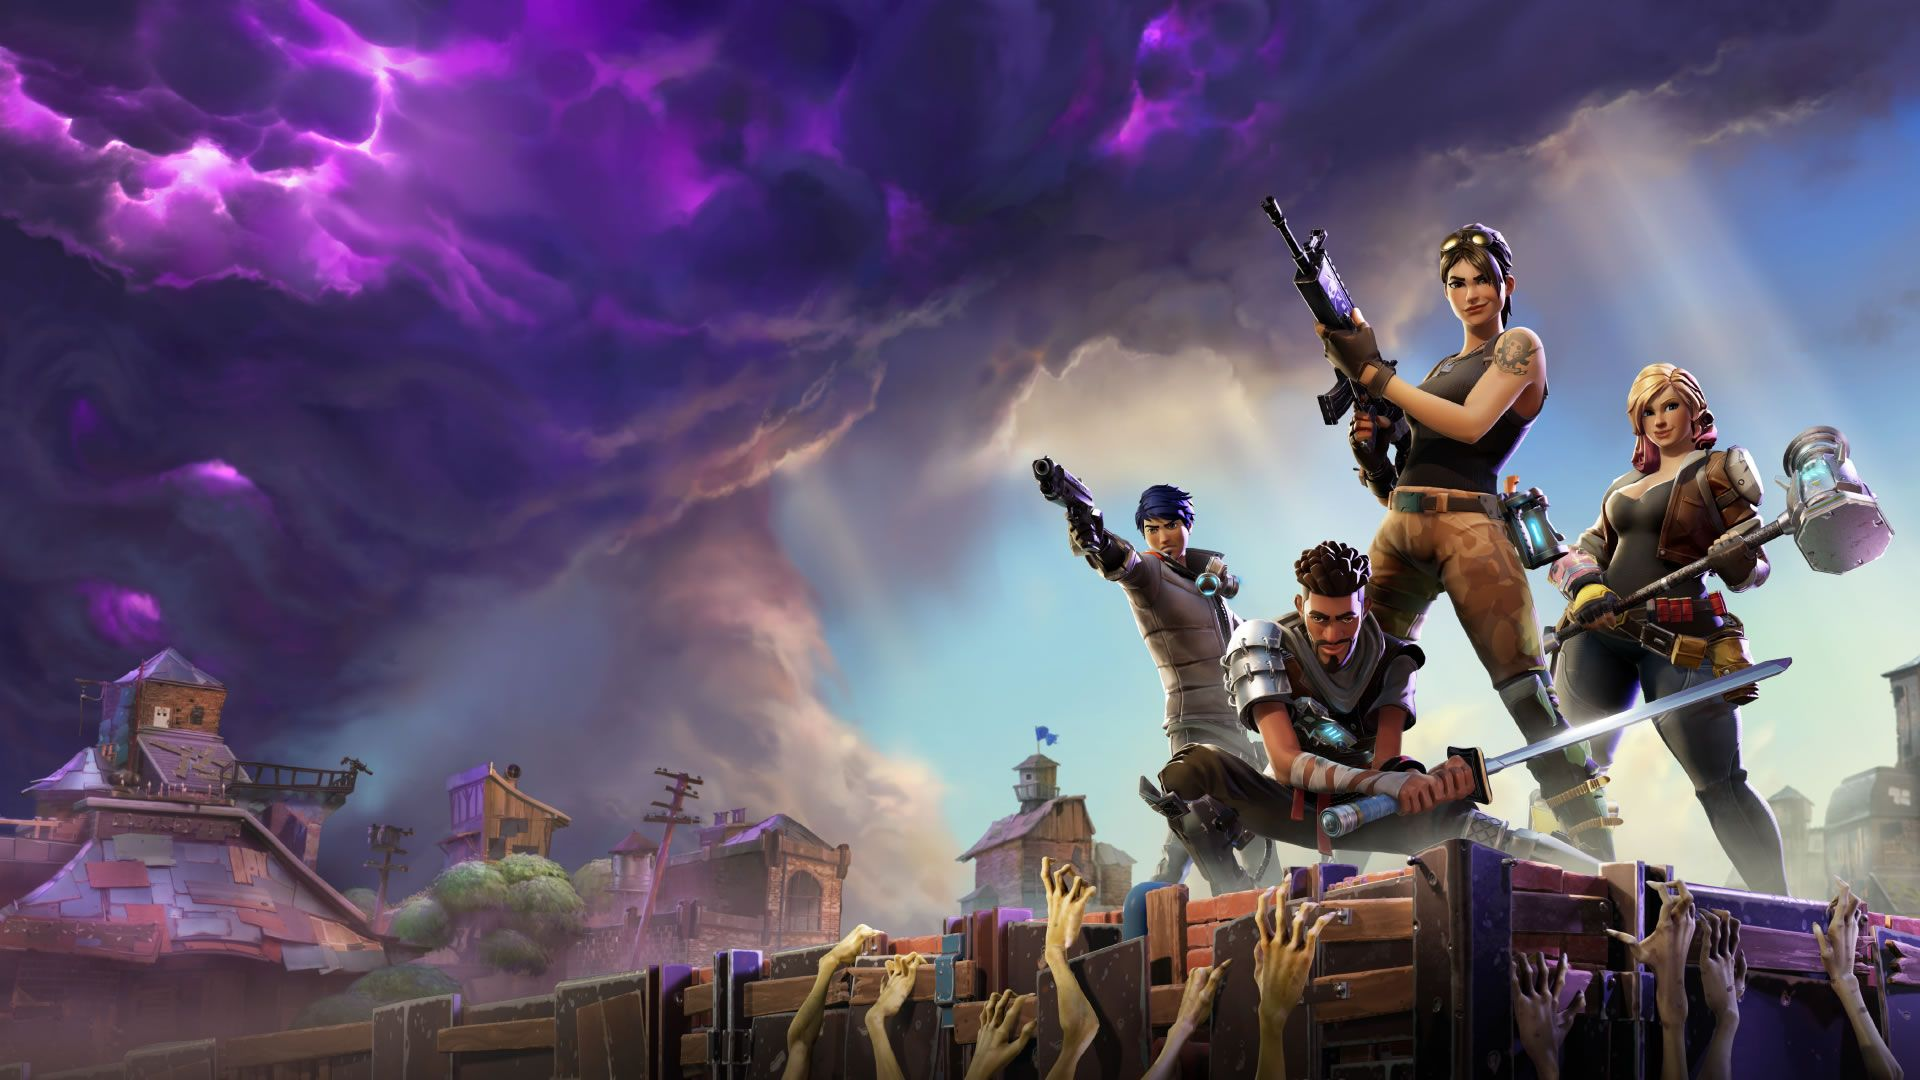 Ps4 Fortnite Wallpapers Top Free Ps4 Fortnite Backgrounds